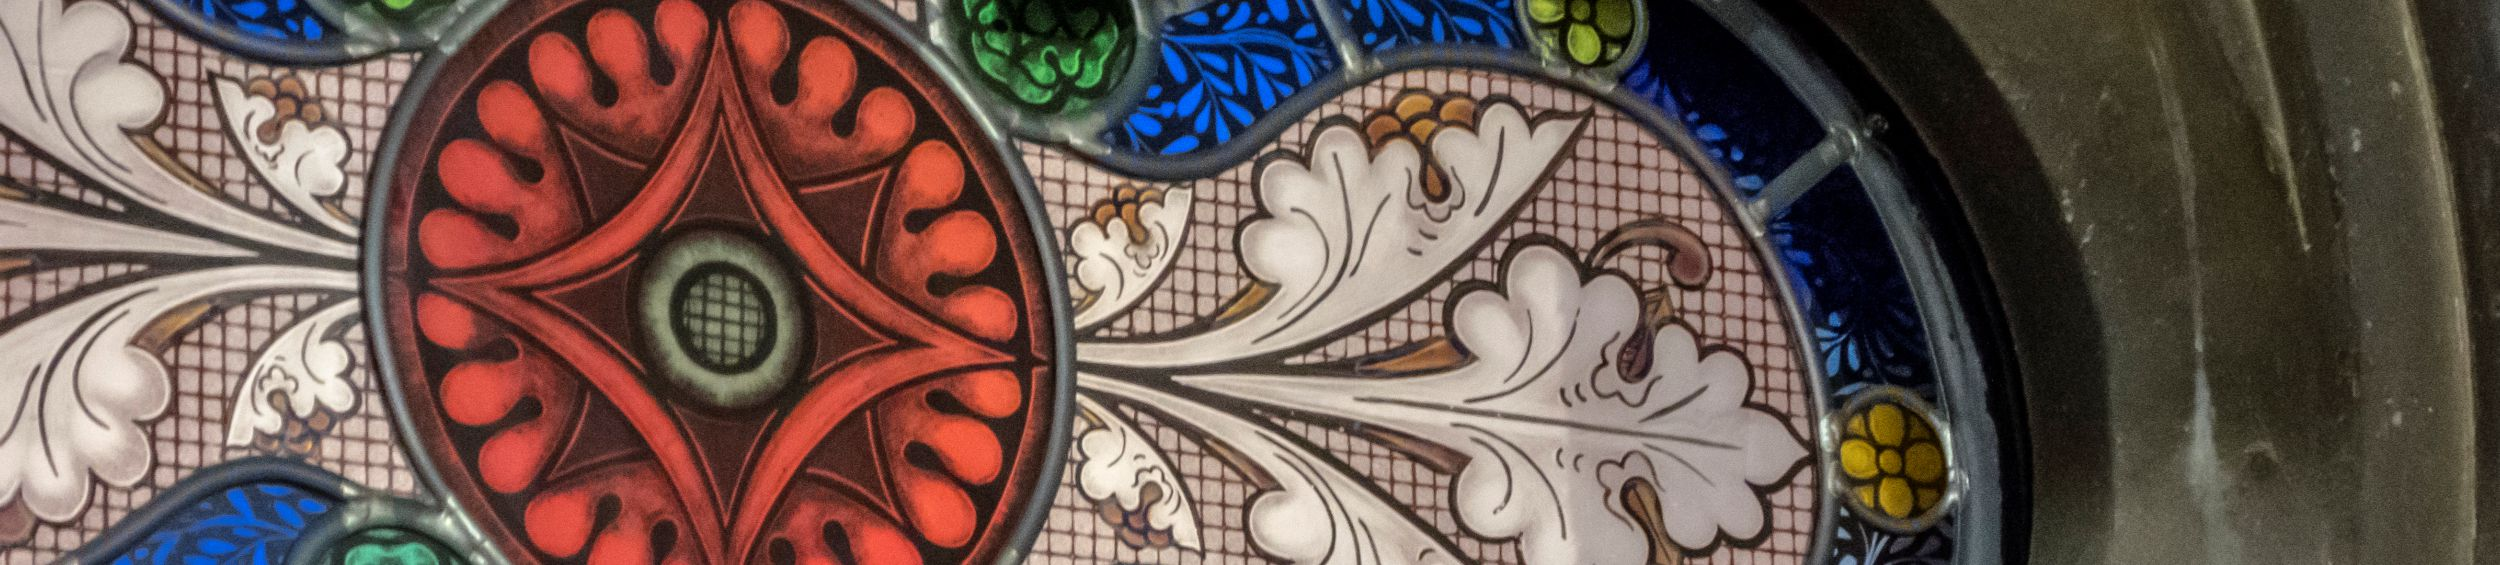 Fraction of a Stain Glass Window